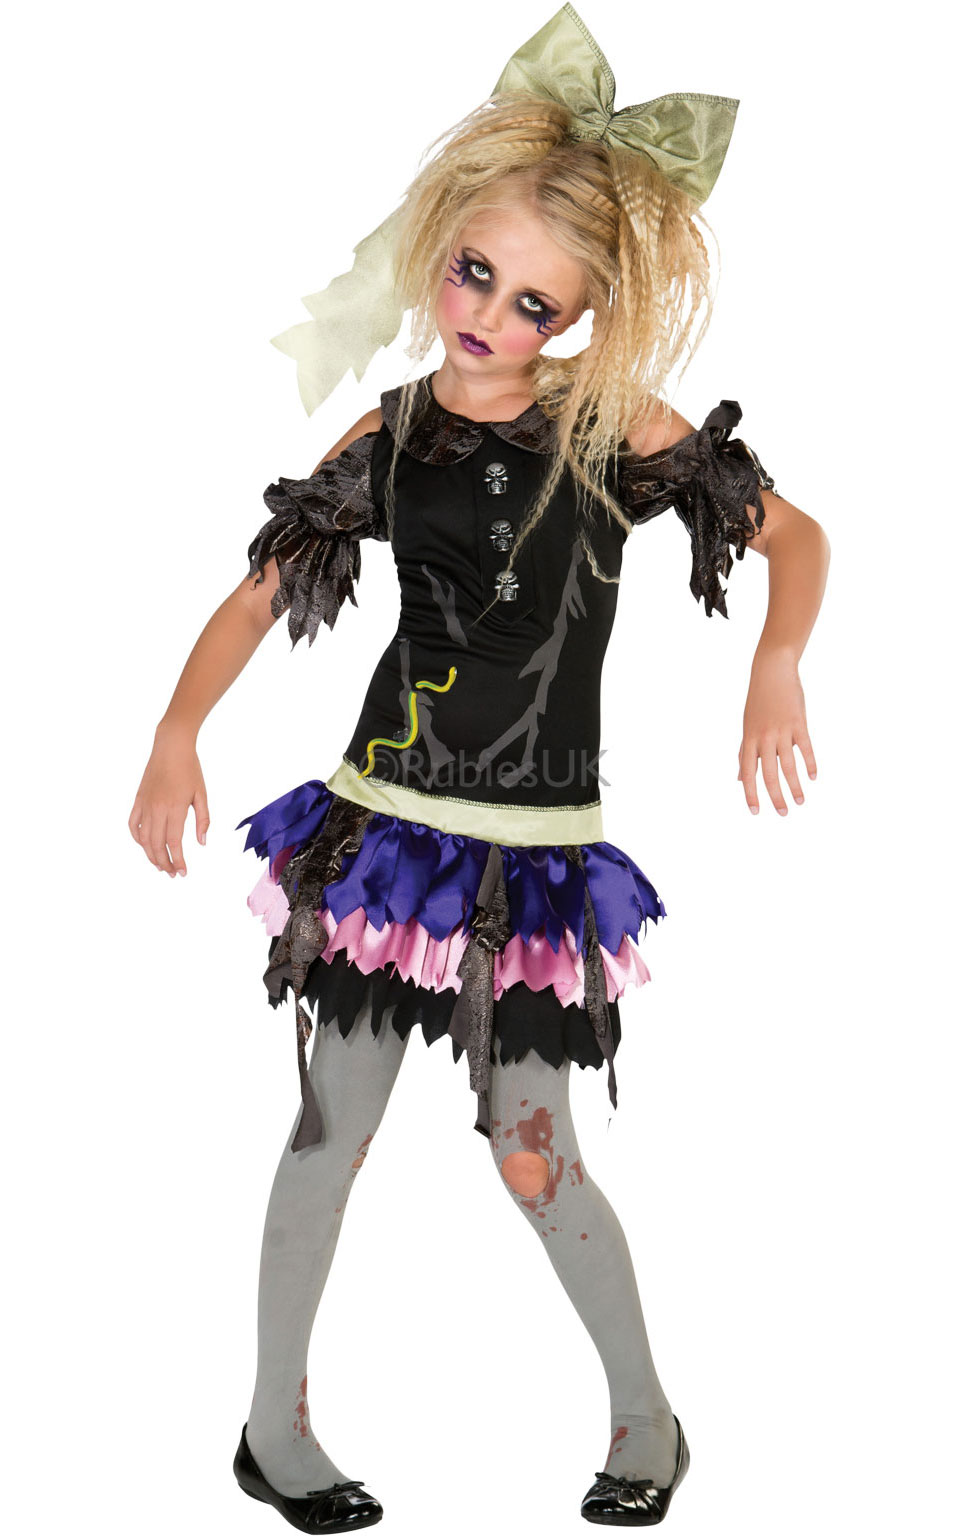 girls halloween zombies dolls costumes  sc 1 st  Little Star Parties & Zombie Doll Costume Fancy Dress Costumes u0026 Party Supplies Ireland ...